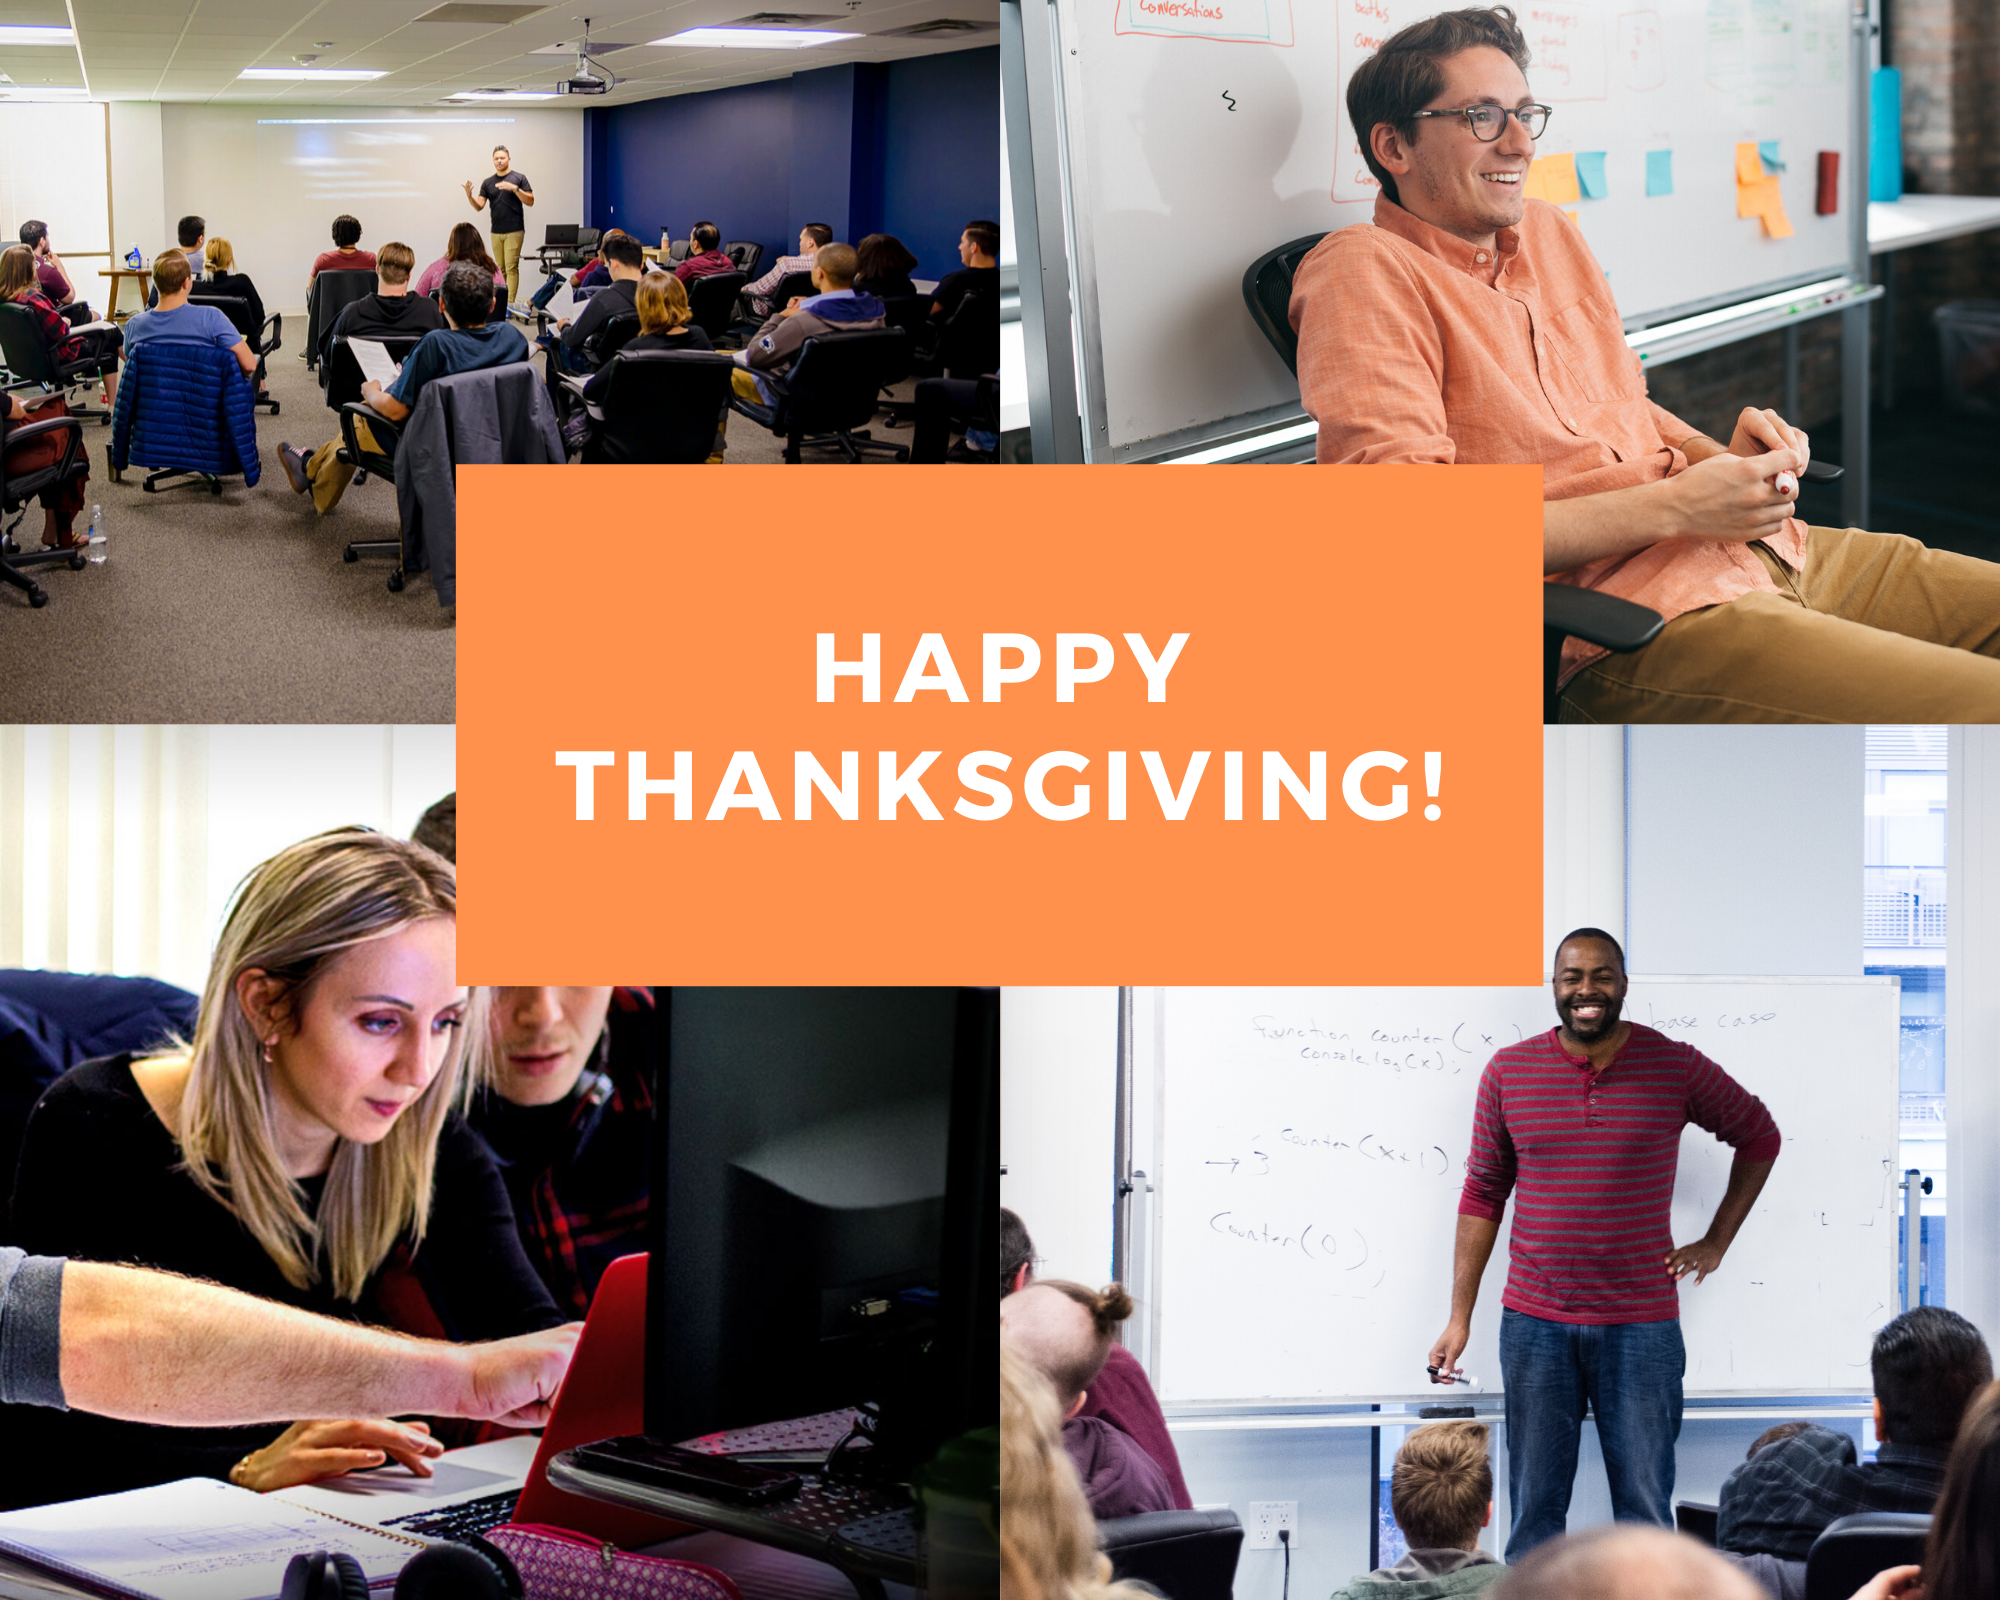 The Jobs, Employers & Alumni We're Thankful For This Year